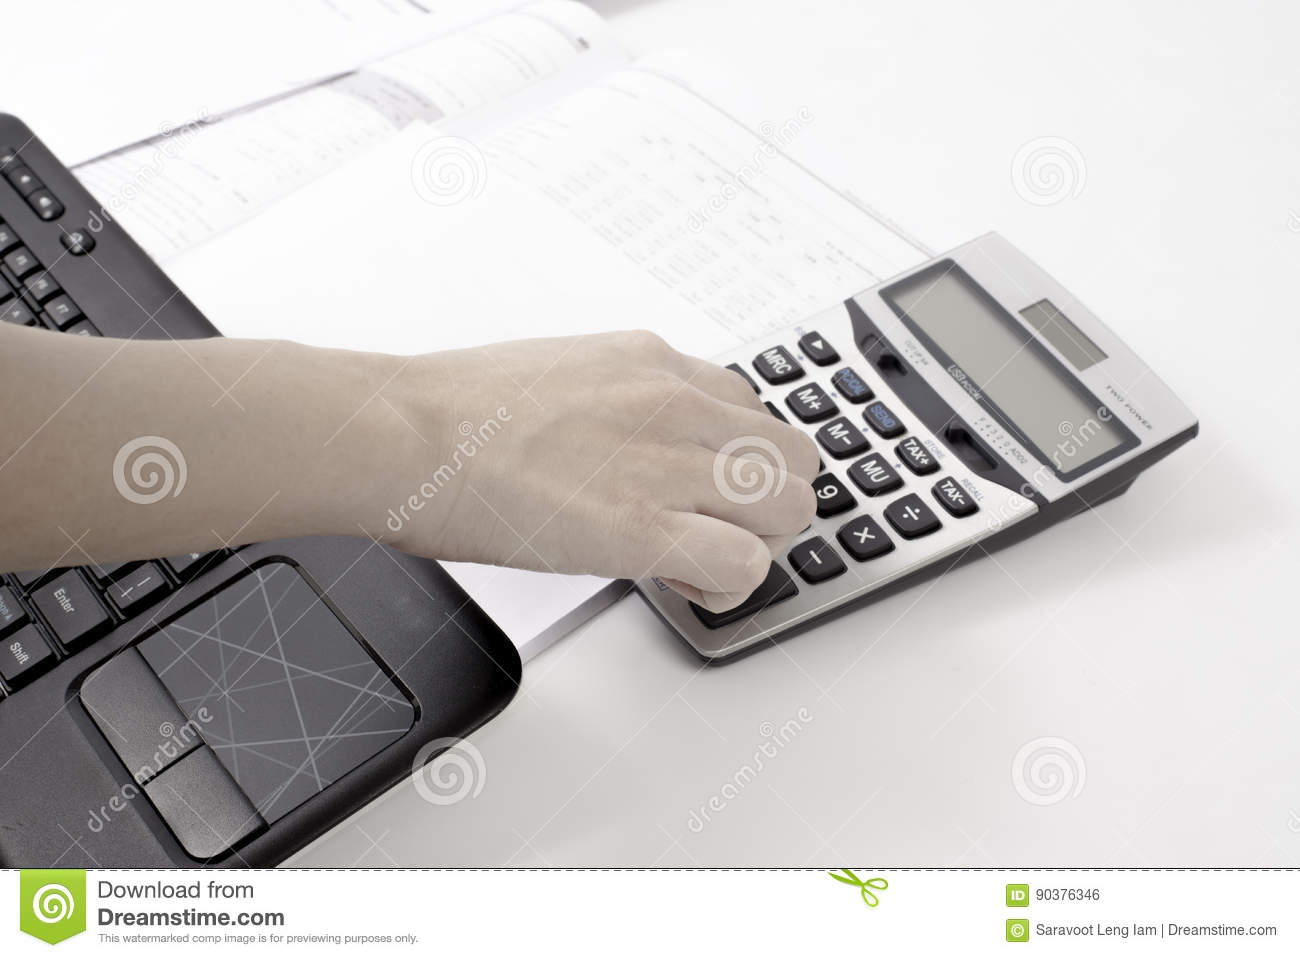 Calculating for a business account